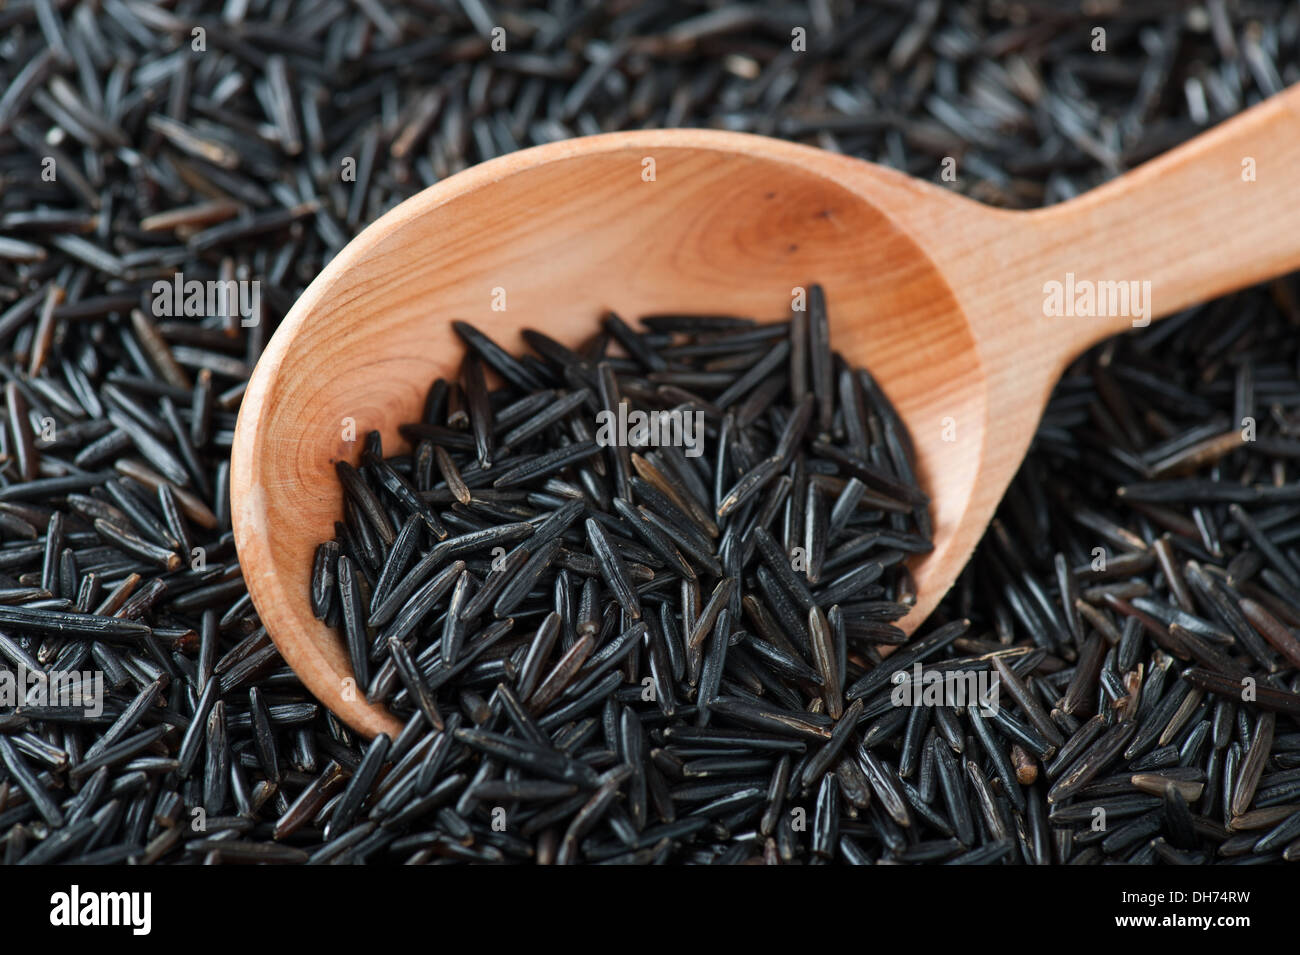 Wild Rice In Wooden Spoon - Stock Image